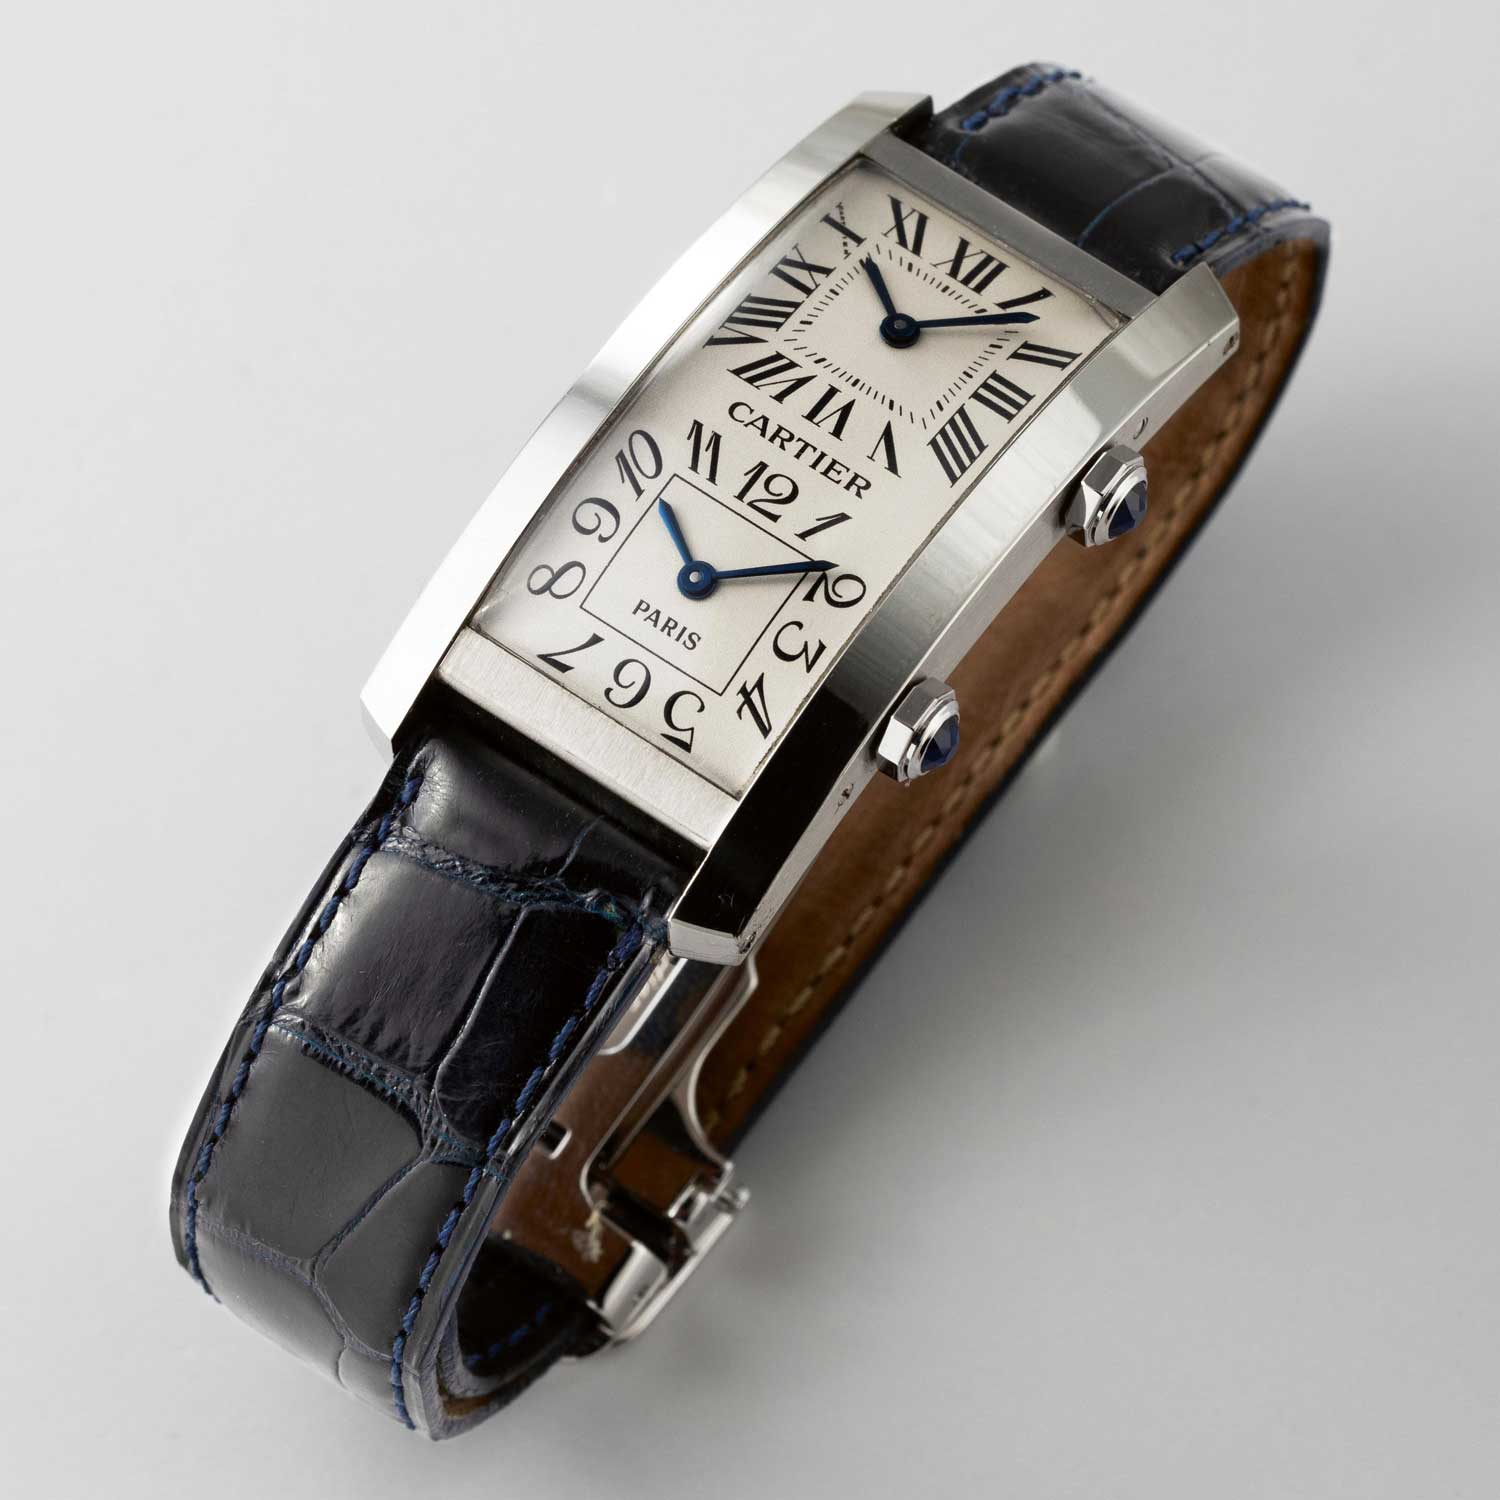 Rare Cartier Tank Cintrée dual time zone watch, driven by two small movements with Arabic and Roman numerals on the two dials (Image © Revolution)